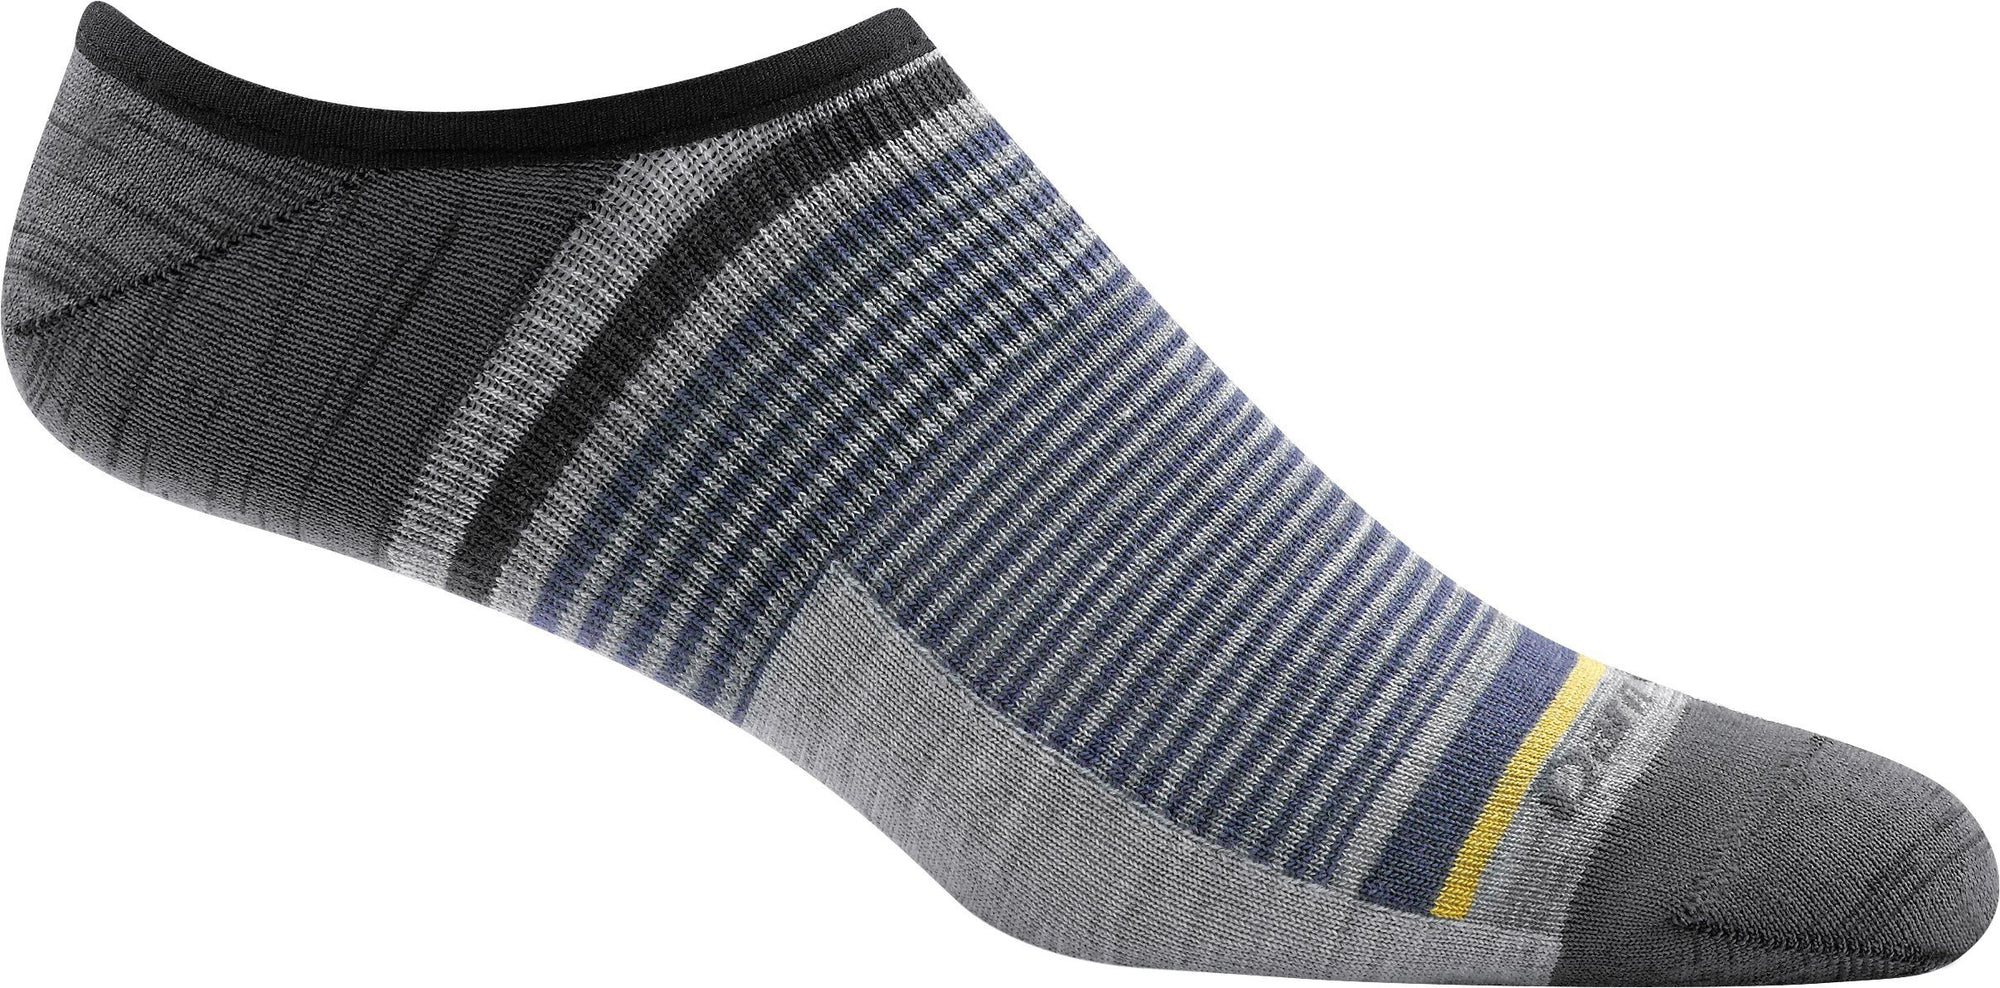 Darn Tough - Topless Stripe No Show Hidden Lightweight | Men's - Knock Your Socks Off